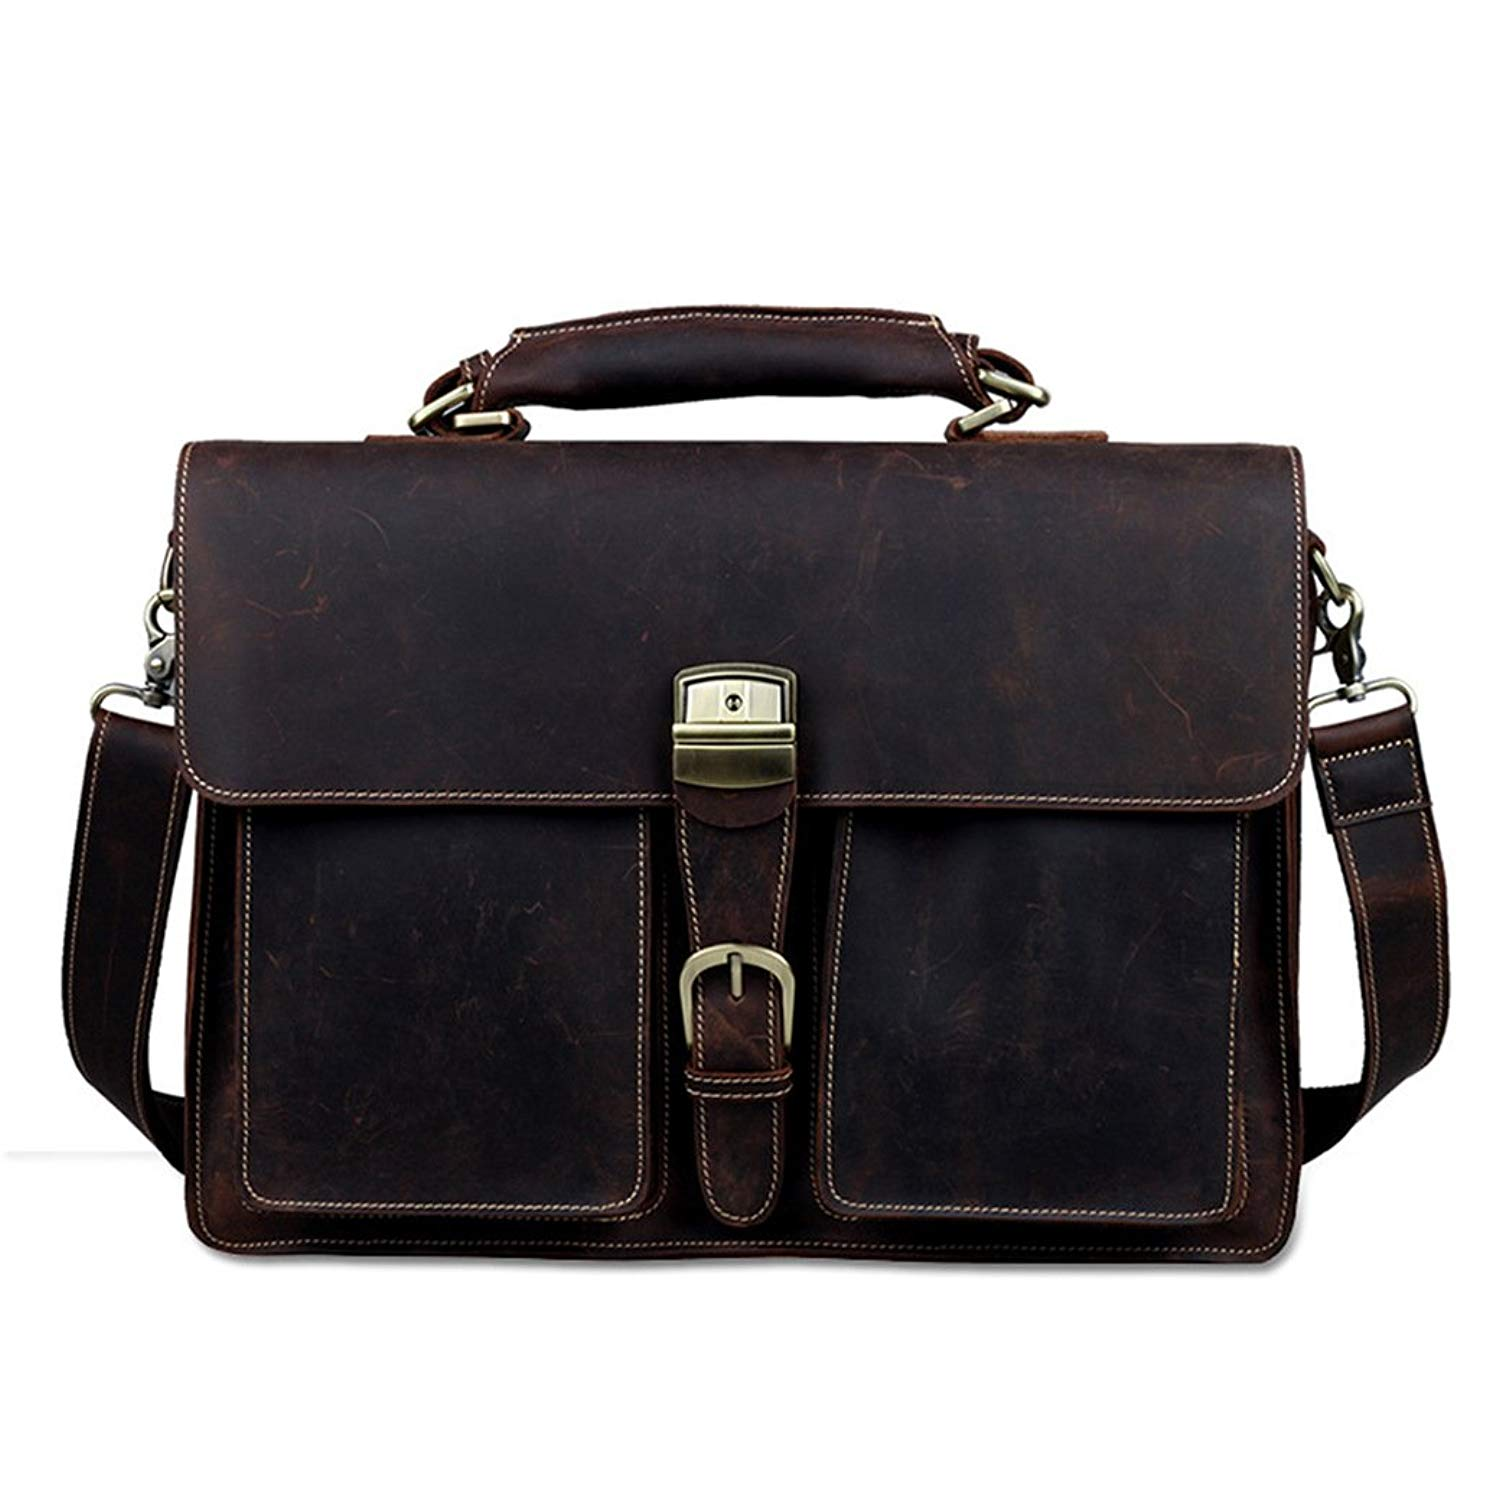 818b2a6c61f3 Get Quotations · leather briefcase Dark brown slim laptop case saddleback  leather classic briefcase